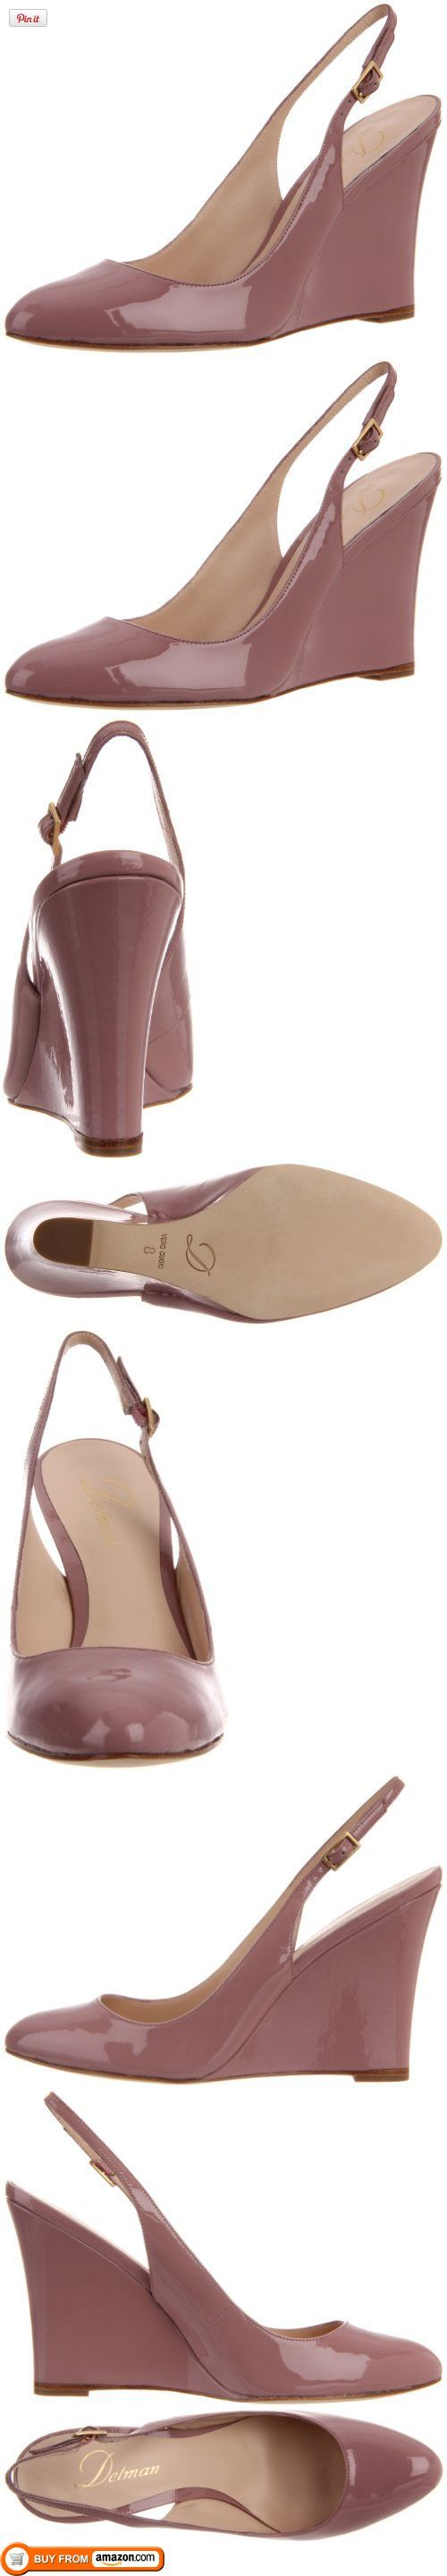 womens summer shoes 2013-2014